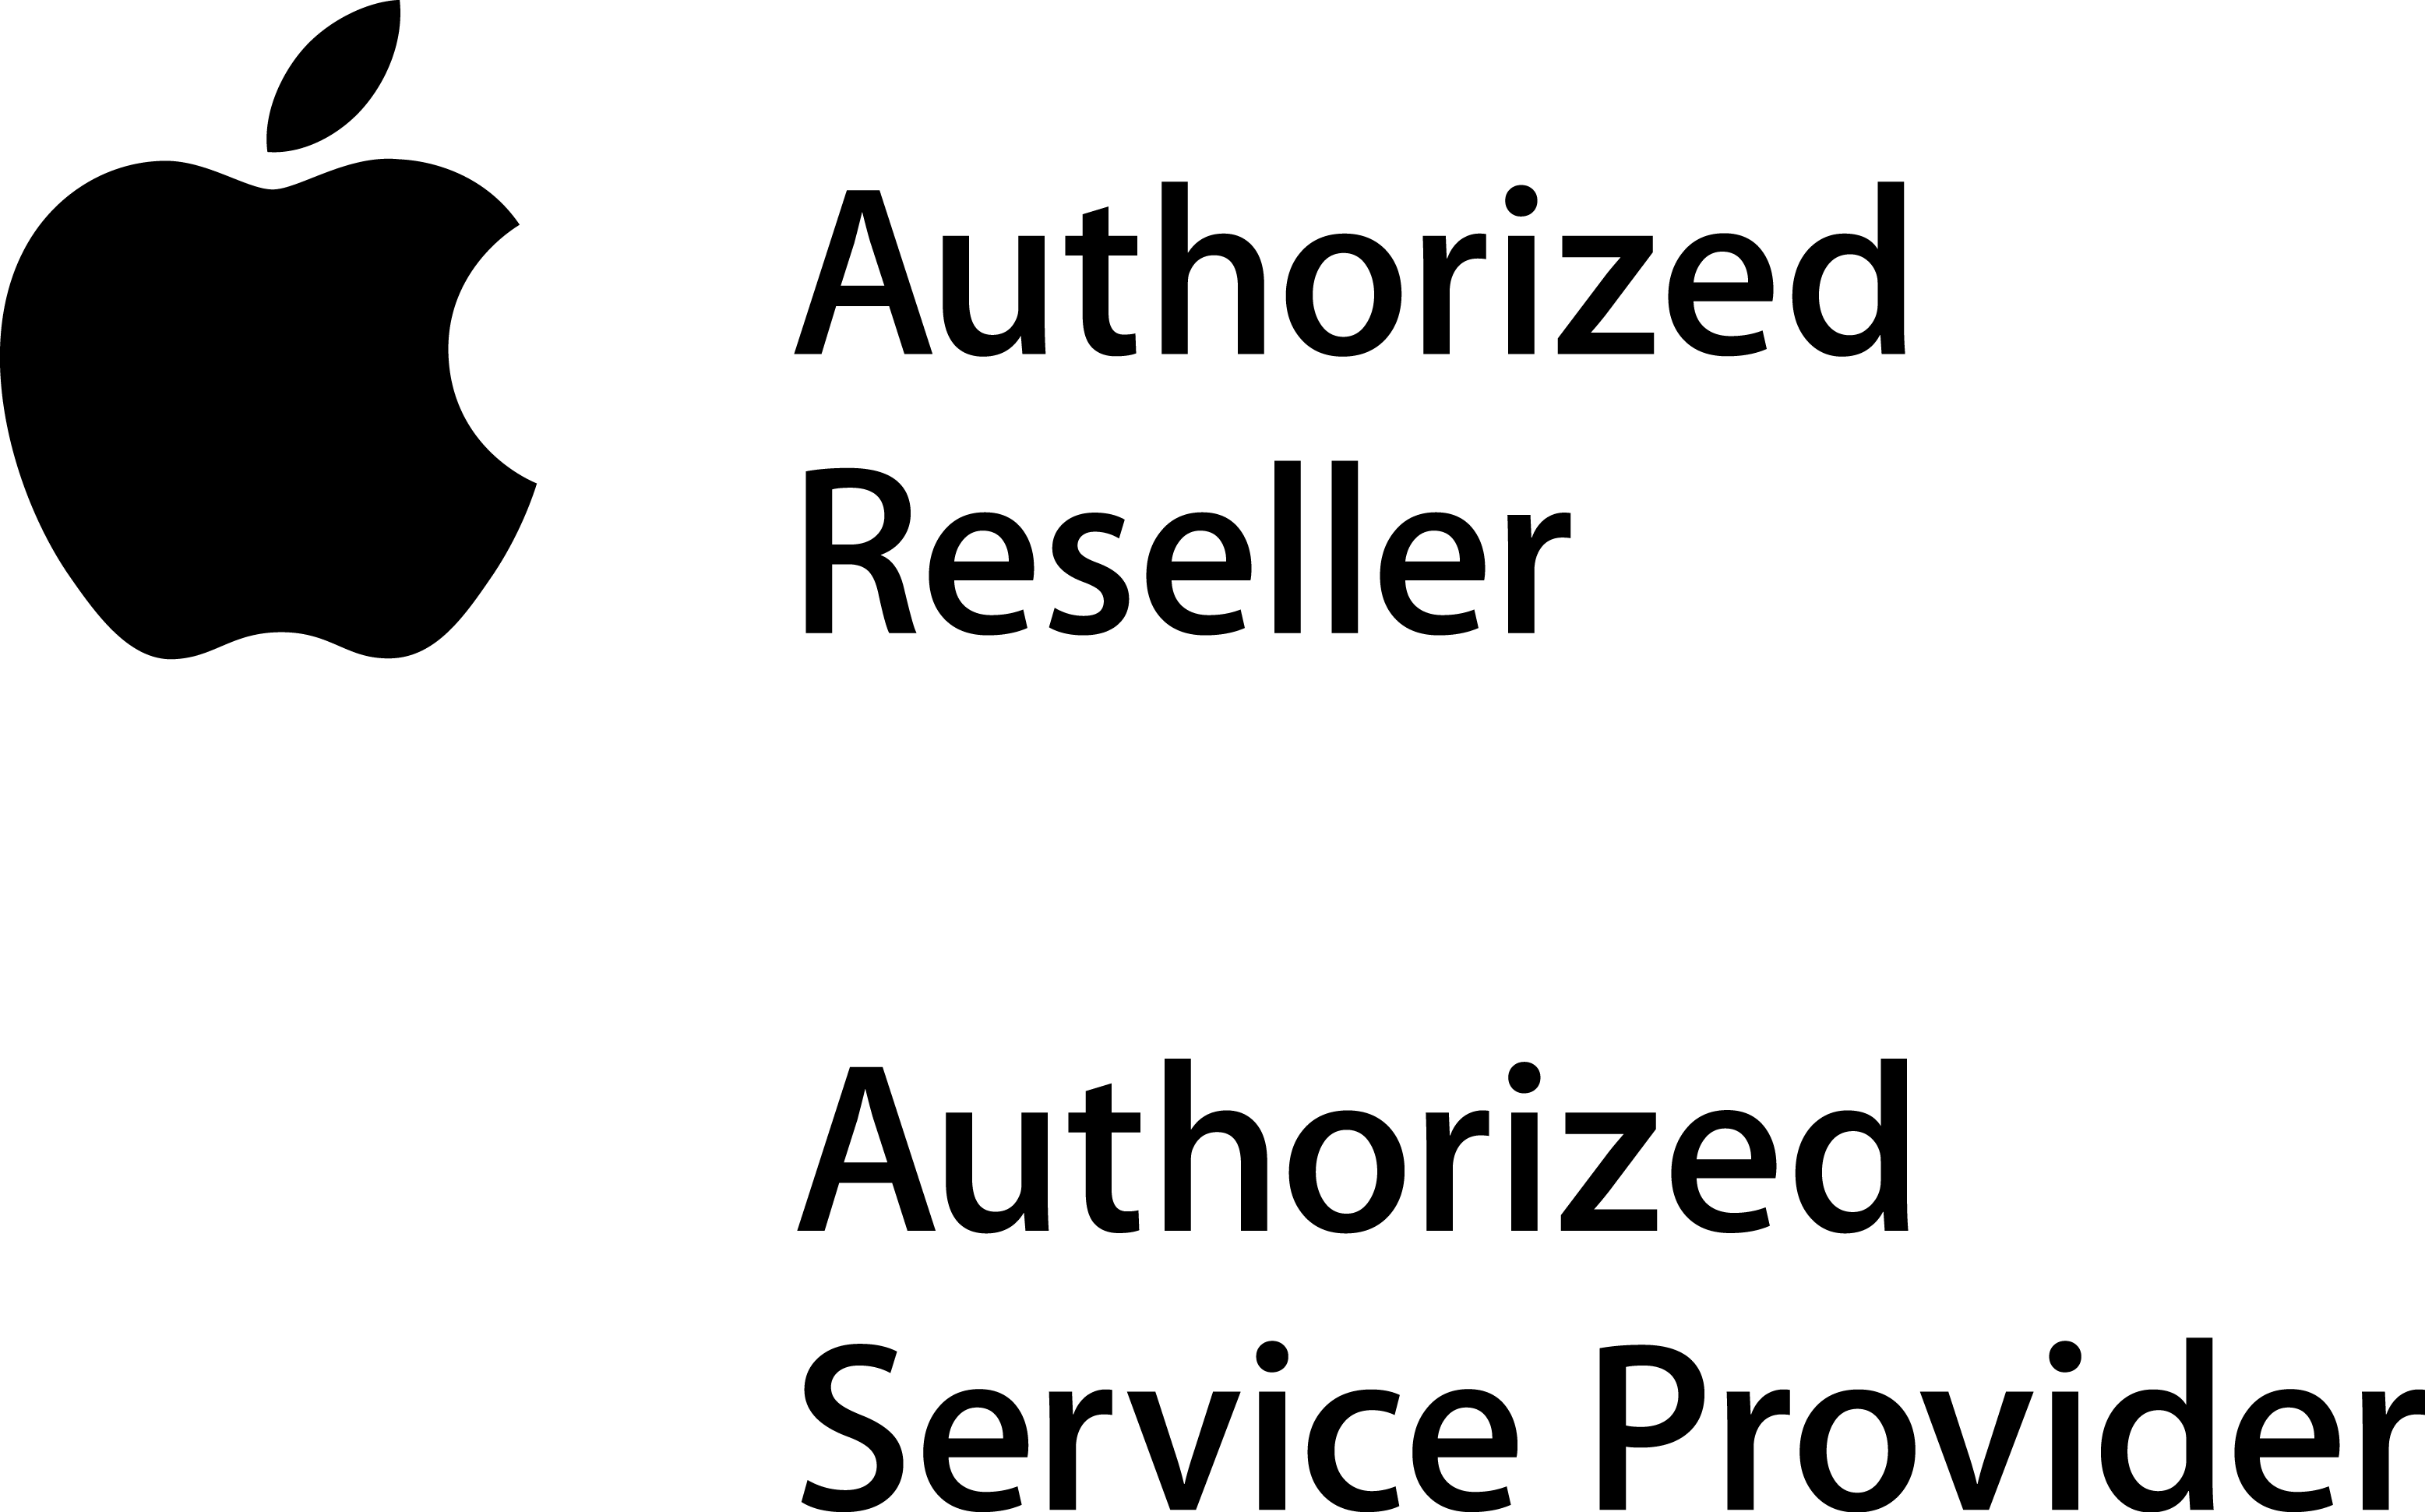 Apple Authorized Reseller and Authorized Service Provider logo